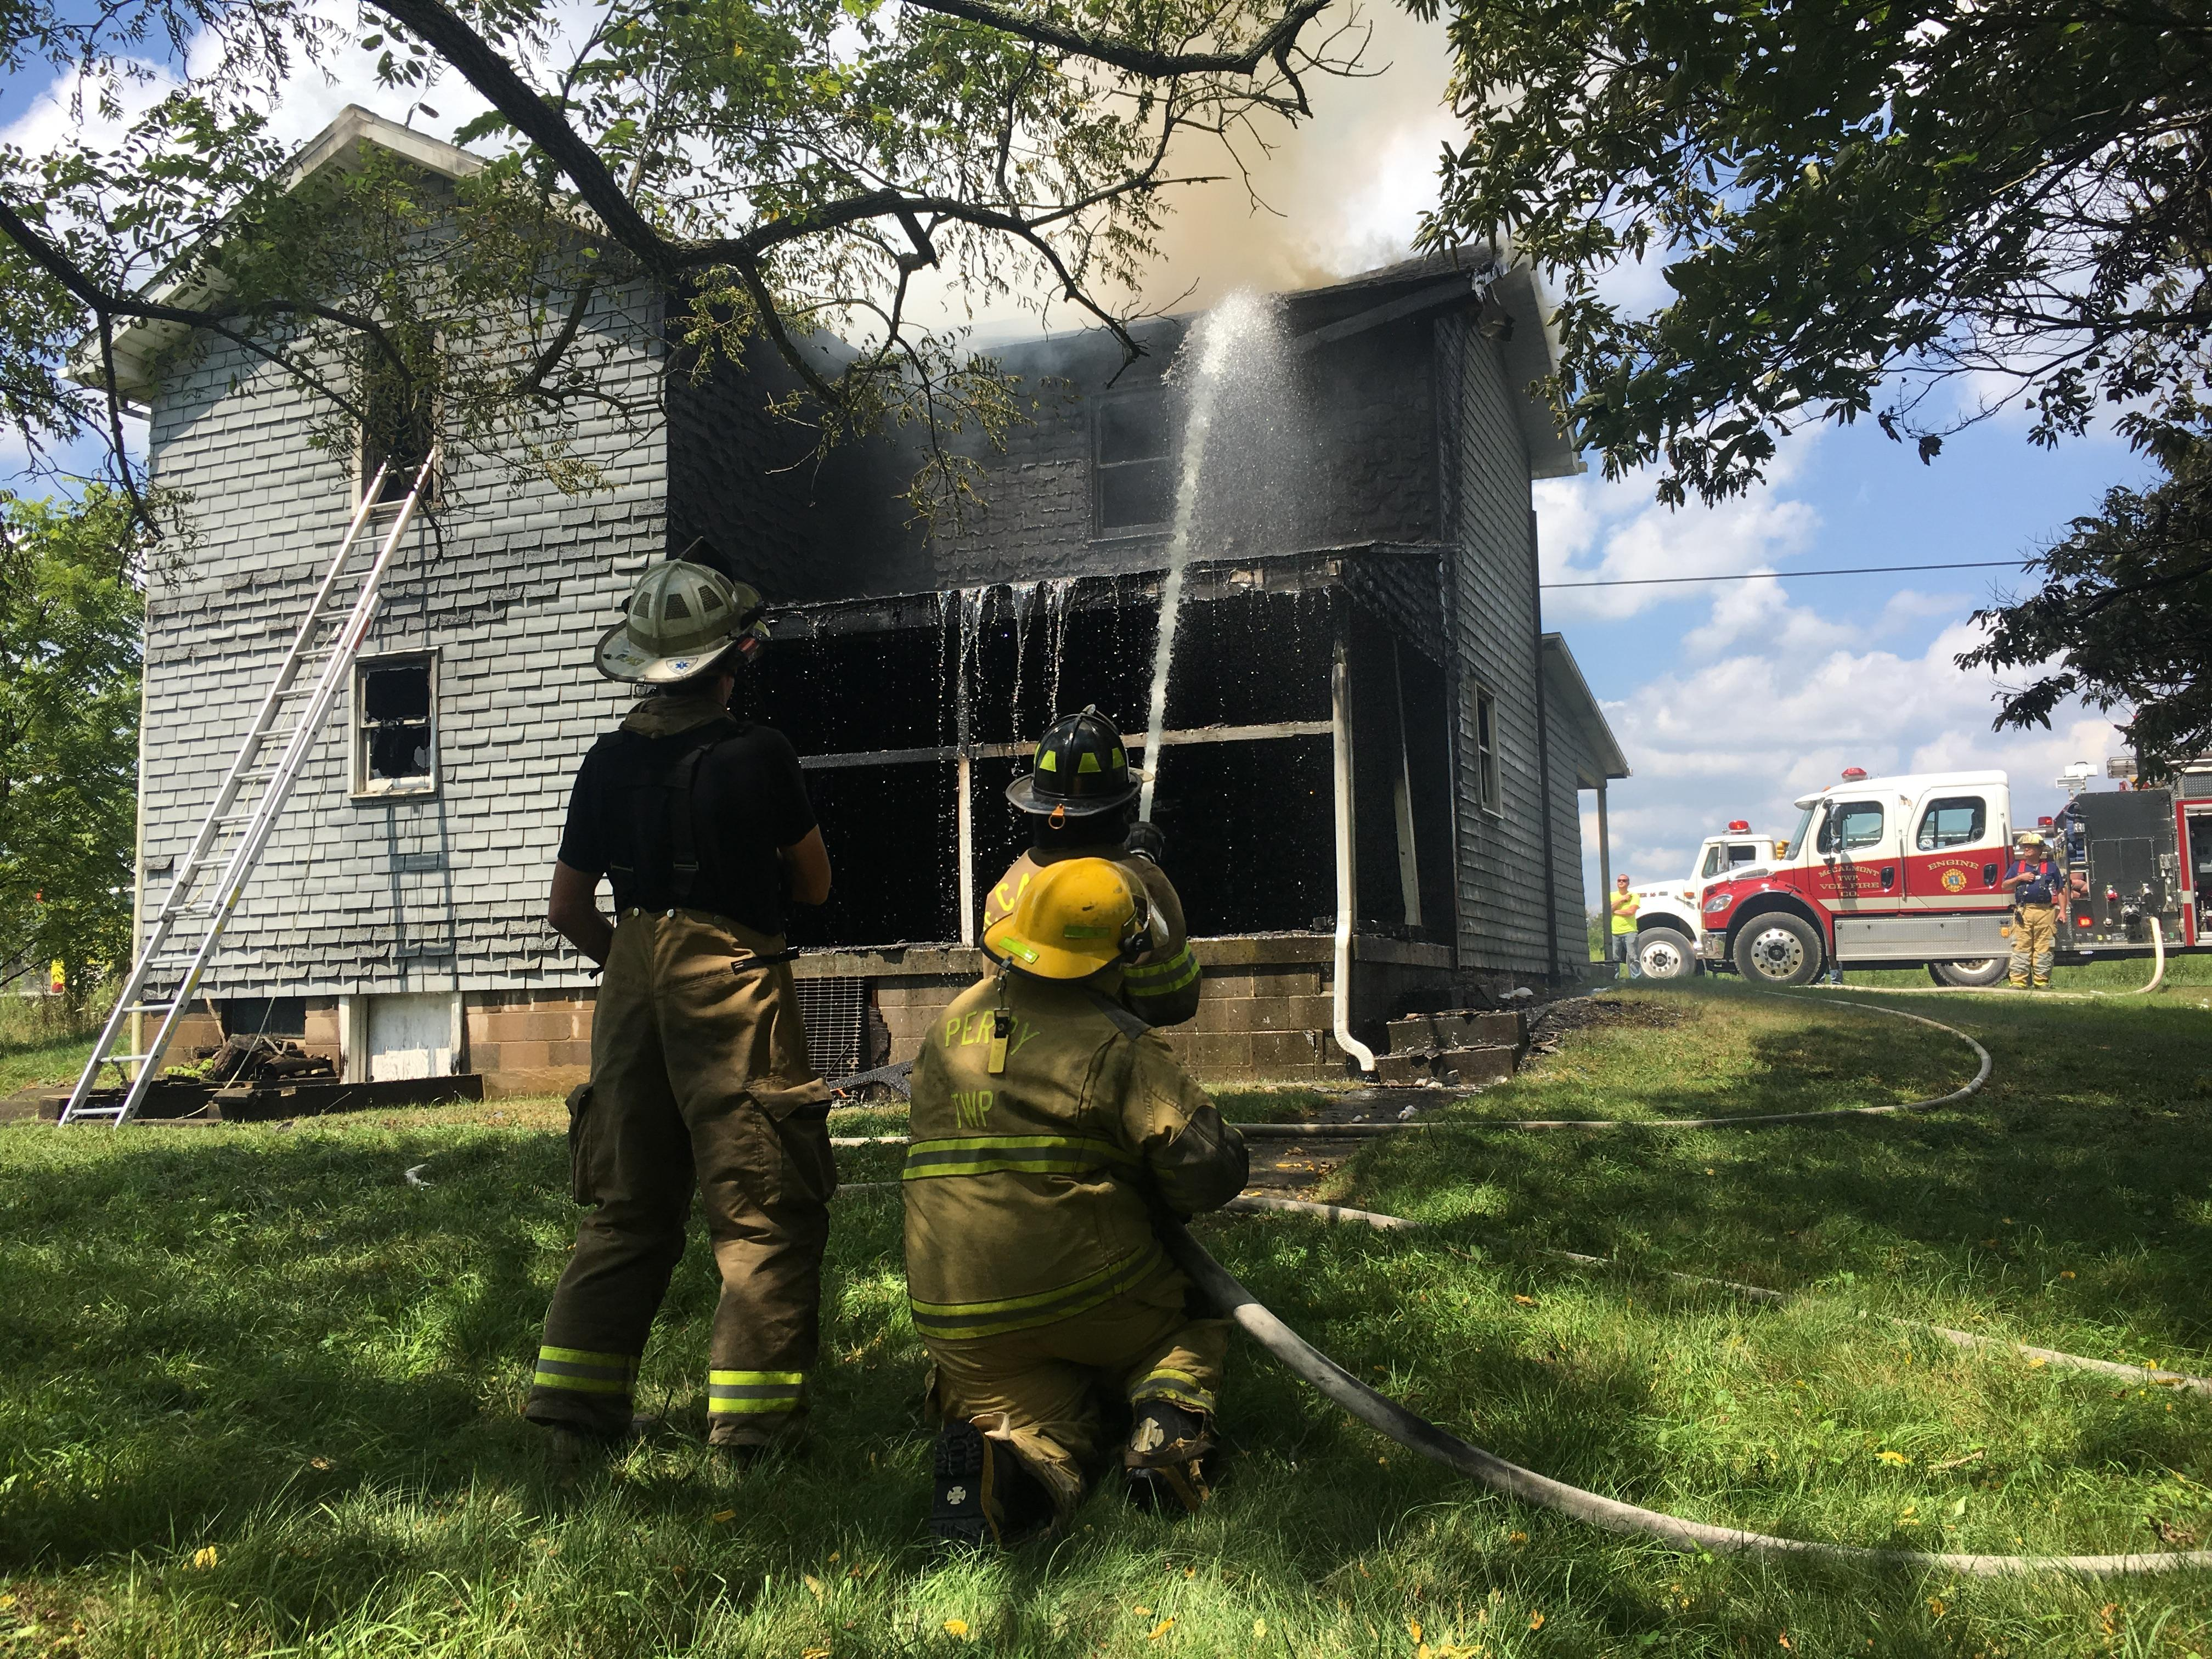 Firefighters were called to a house fire in Jefferson County around noon Tuesday. (WJAC)